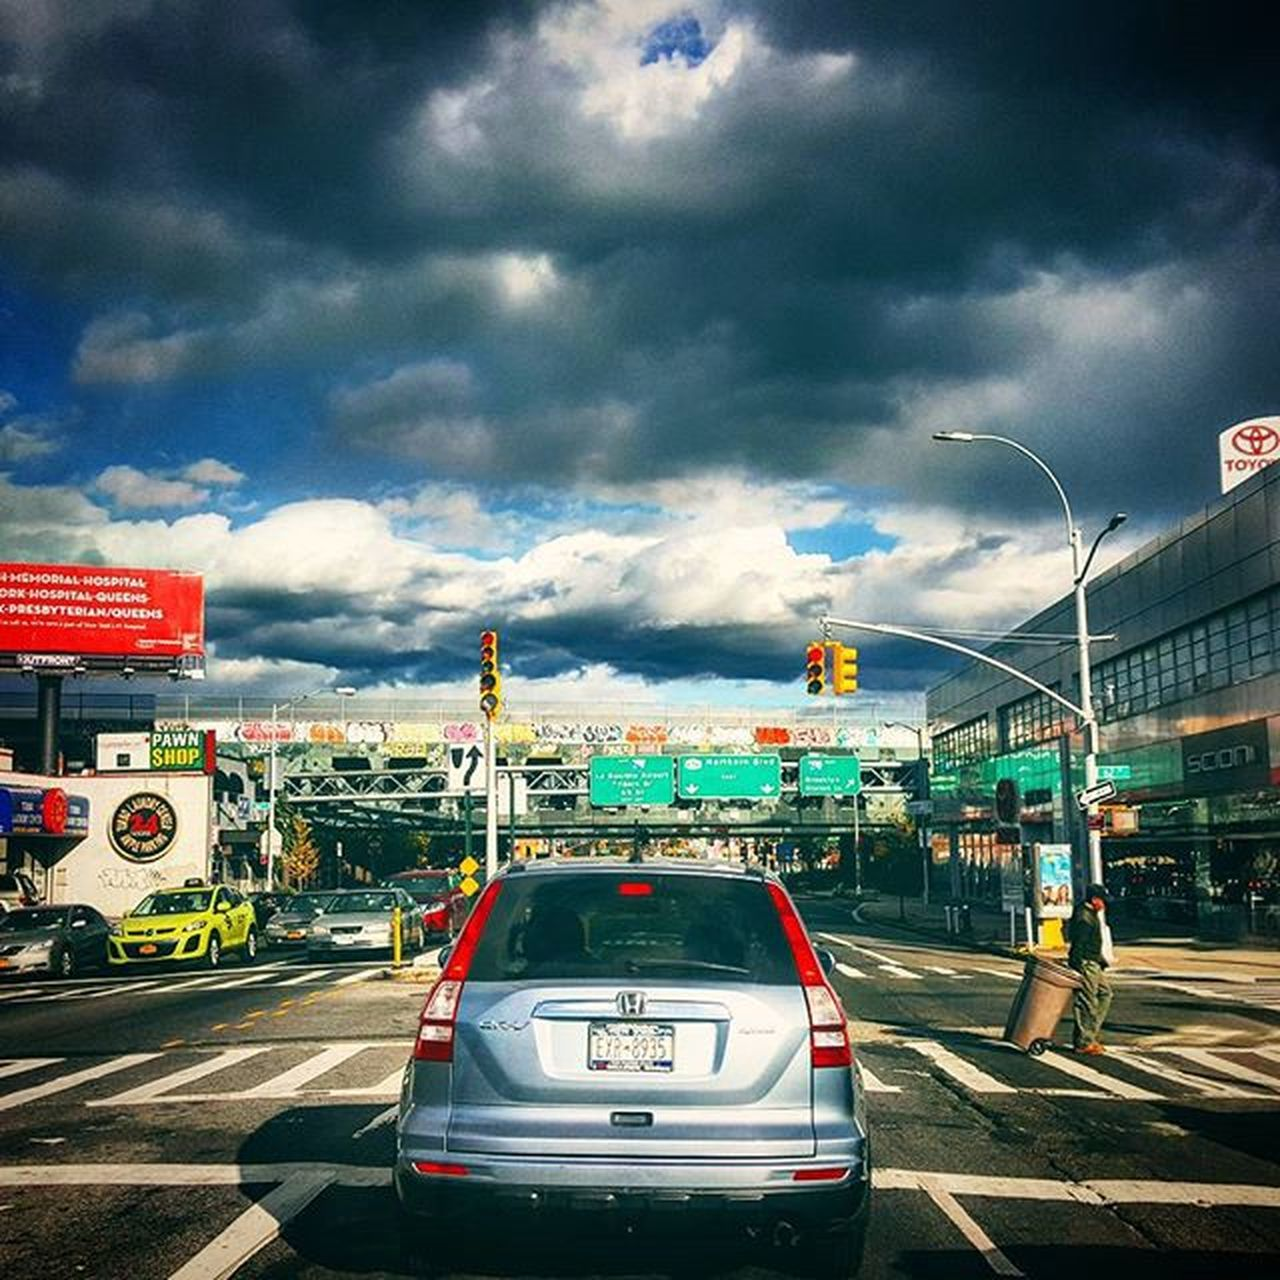 cloud - sky, transportation, car, sky, mode of transport, land vehicle, architecture, built structure, text, building exterior, outdoors, day, road, city, real people